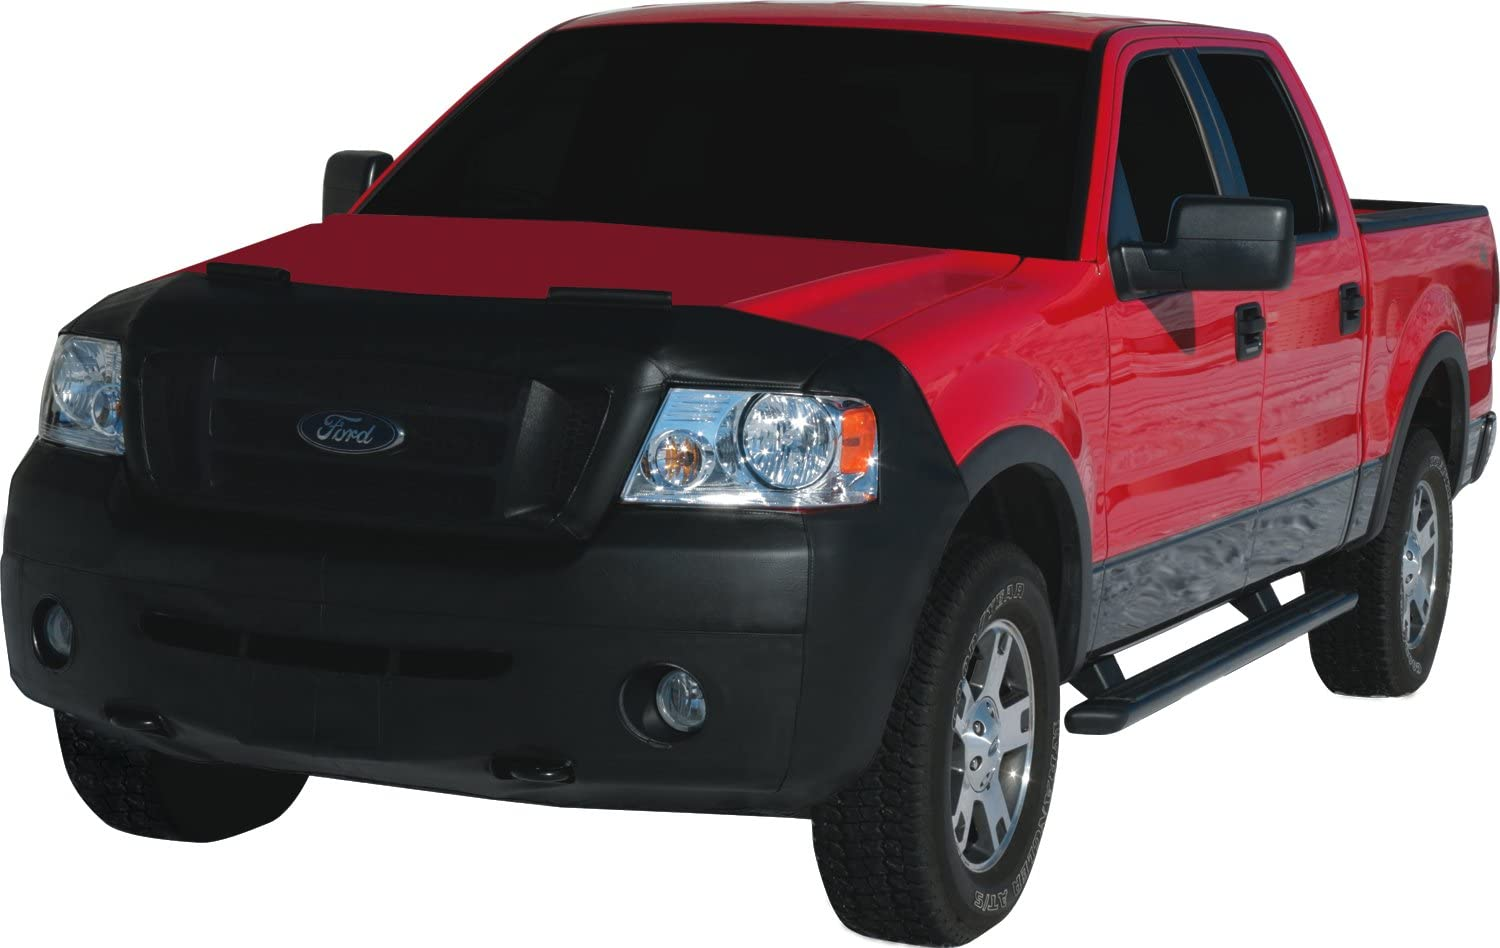 LeBra Front End Cover 551002-01; The Ultimate In Style And Vehicle Protection